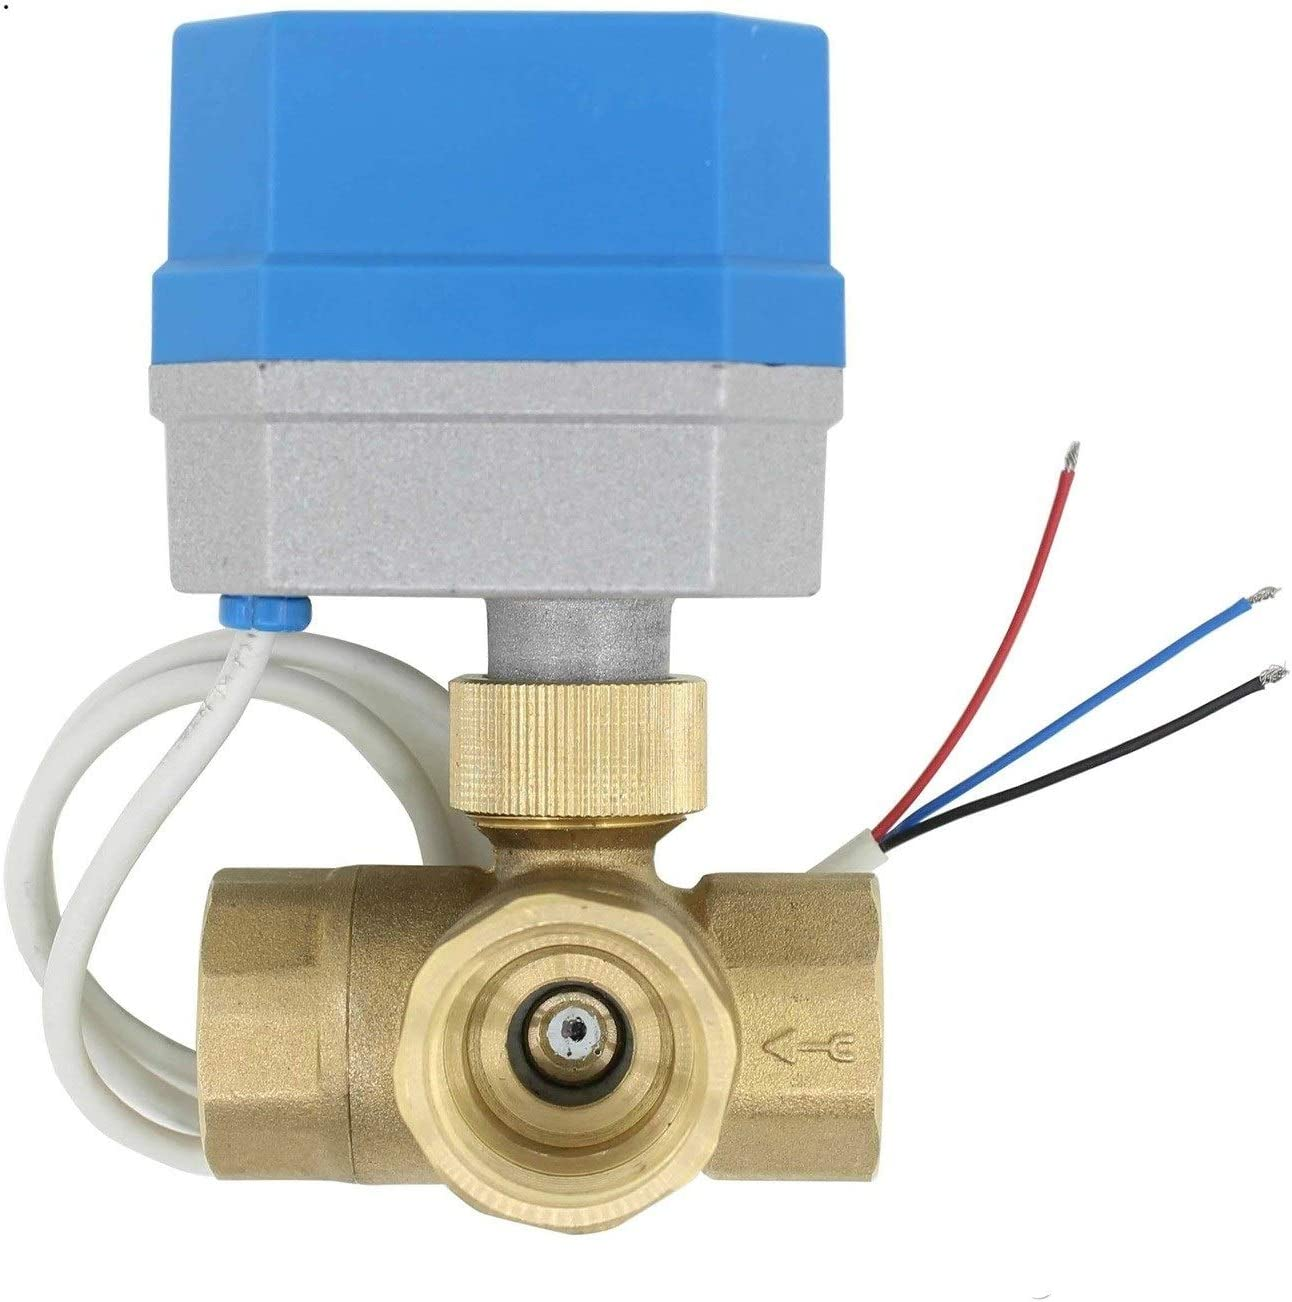 Specification : DC24V, Voltage : DN40 no-branded 2 Way 3way Brass Valve Motorized Ball Valve Electric Ball Valve Electric Actuator Connectors Accessories Valve ZYUS